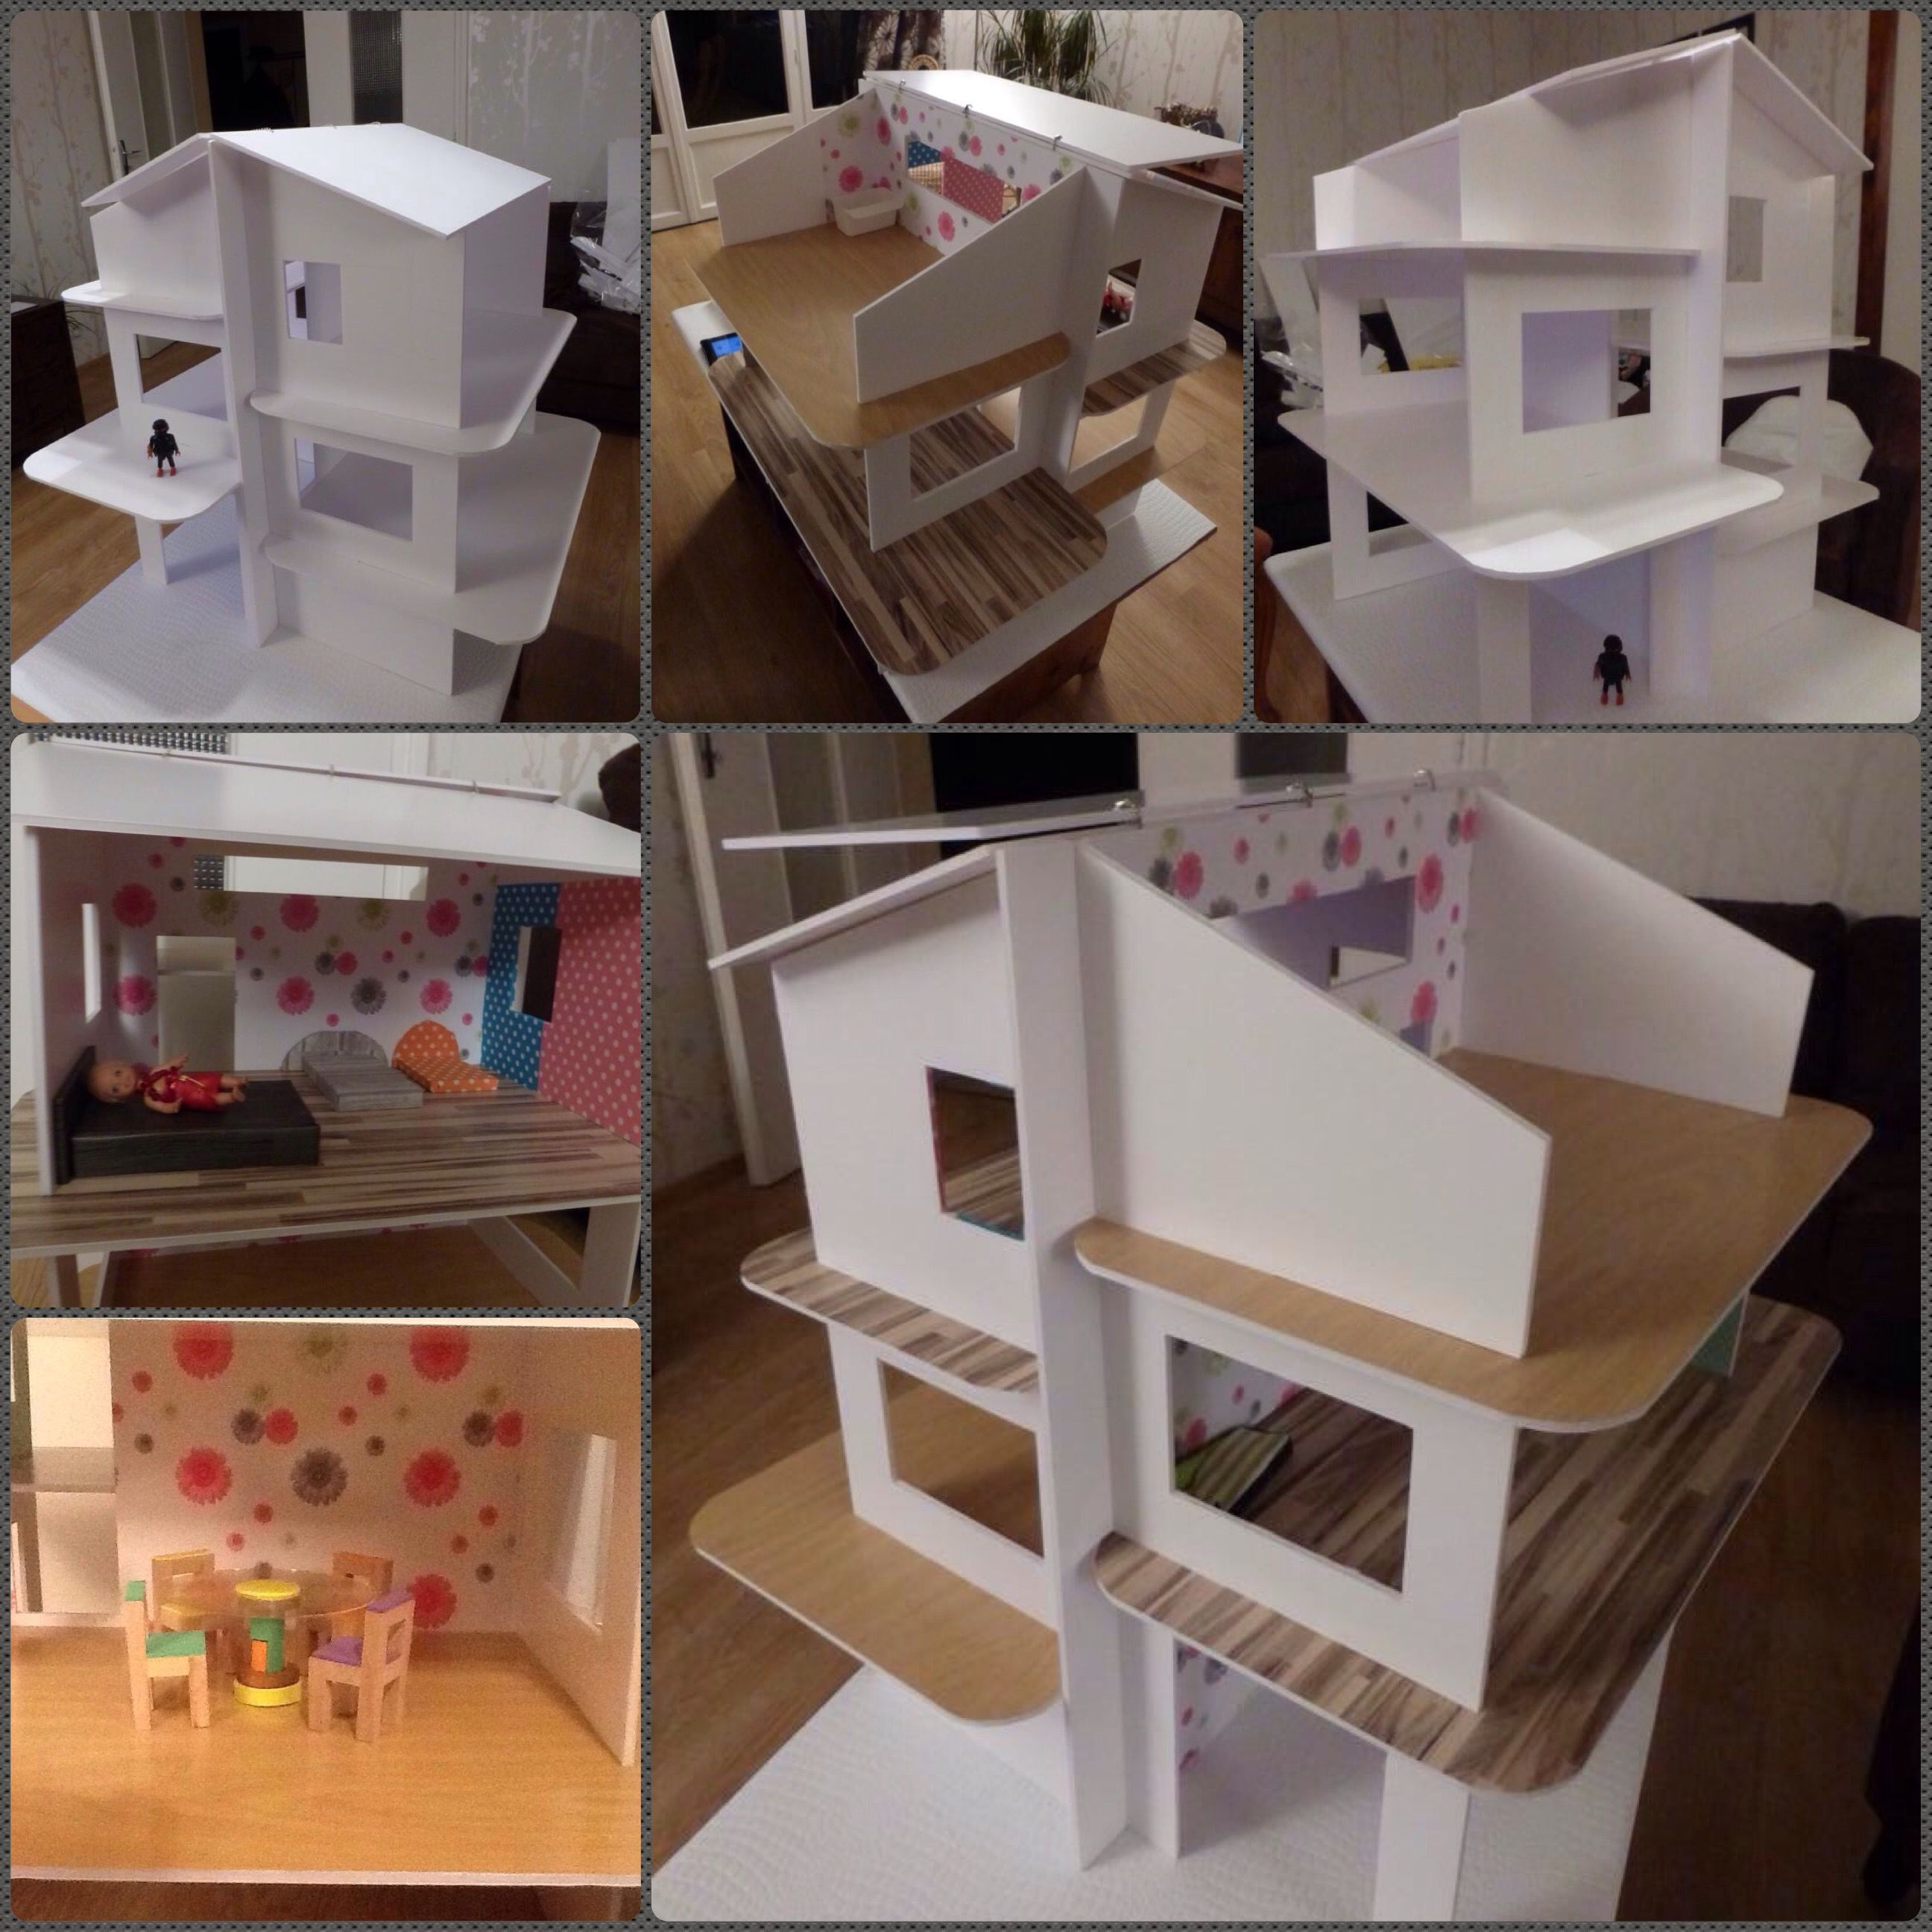 Maison Playmobil Got Love It Pinterest Doll Houses  ~ Maison De Poupéé En Bois A Faire Soi Meme